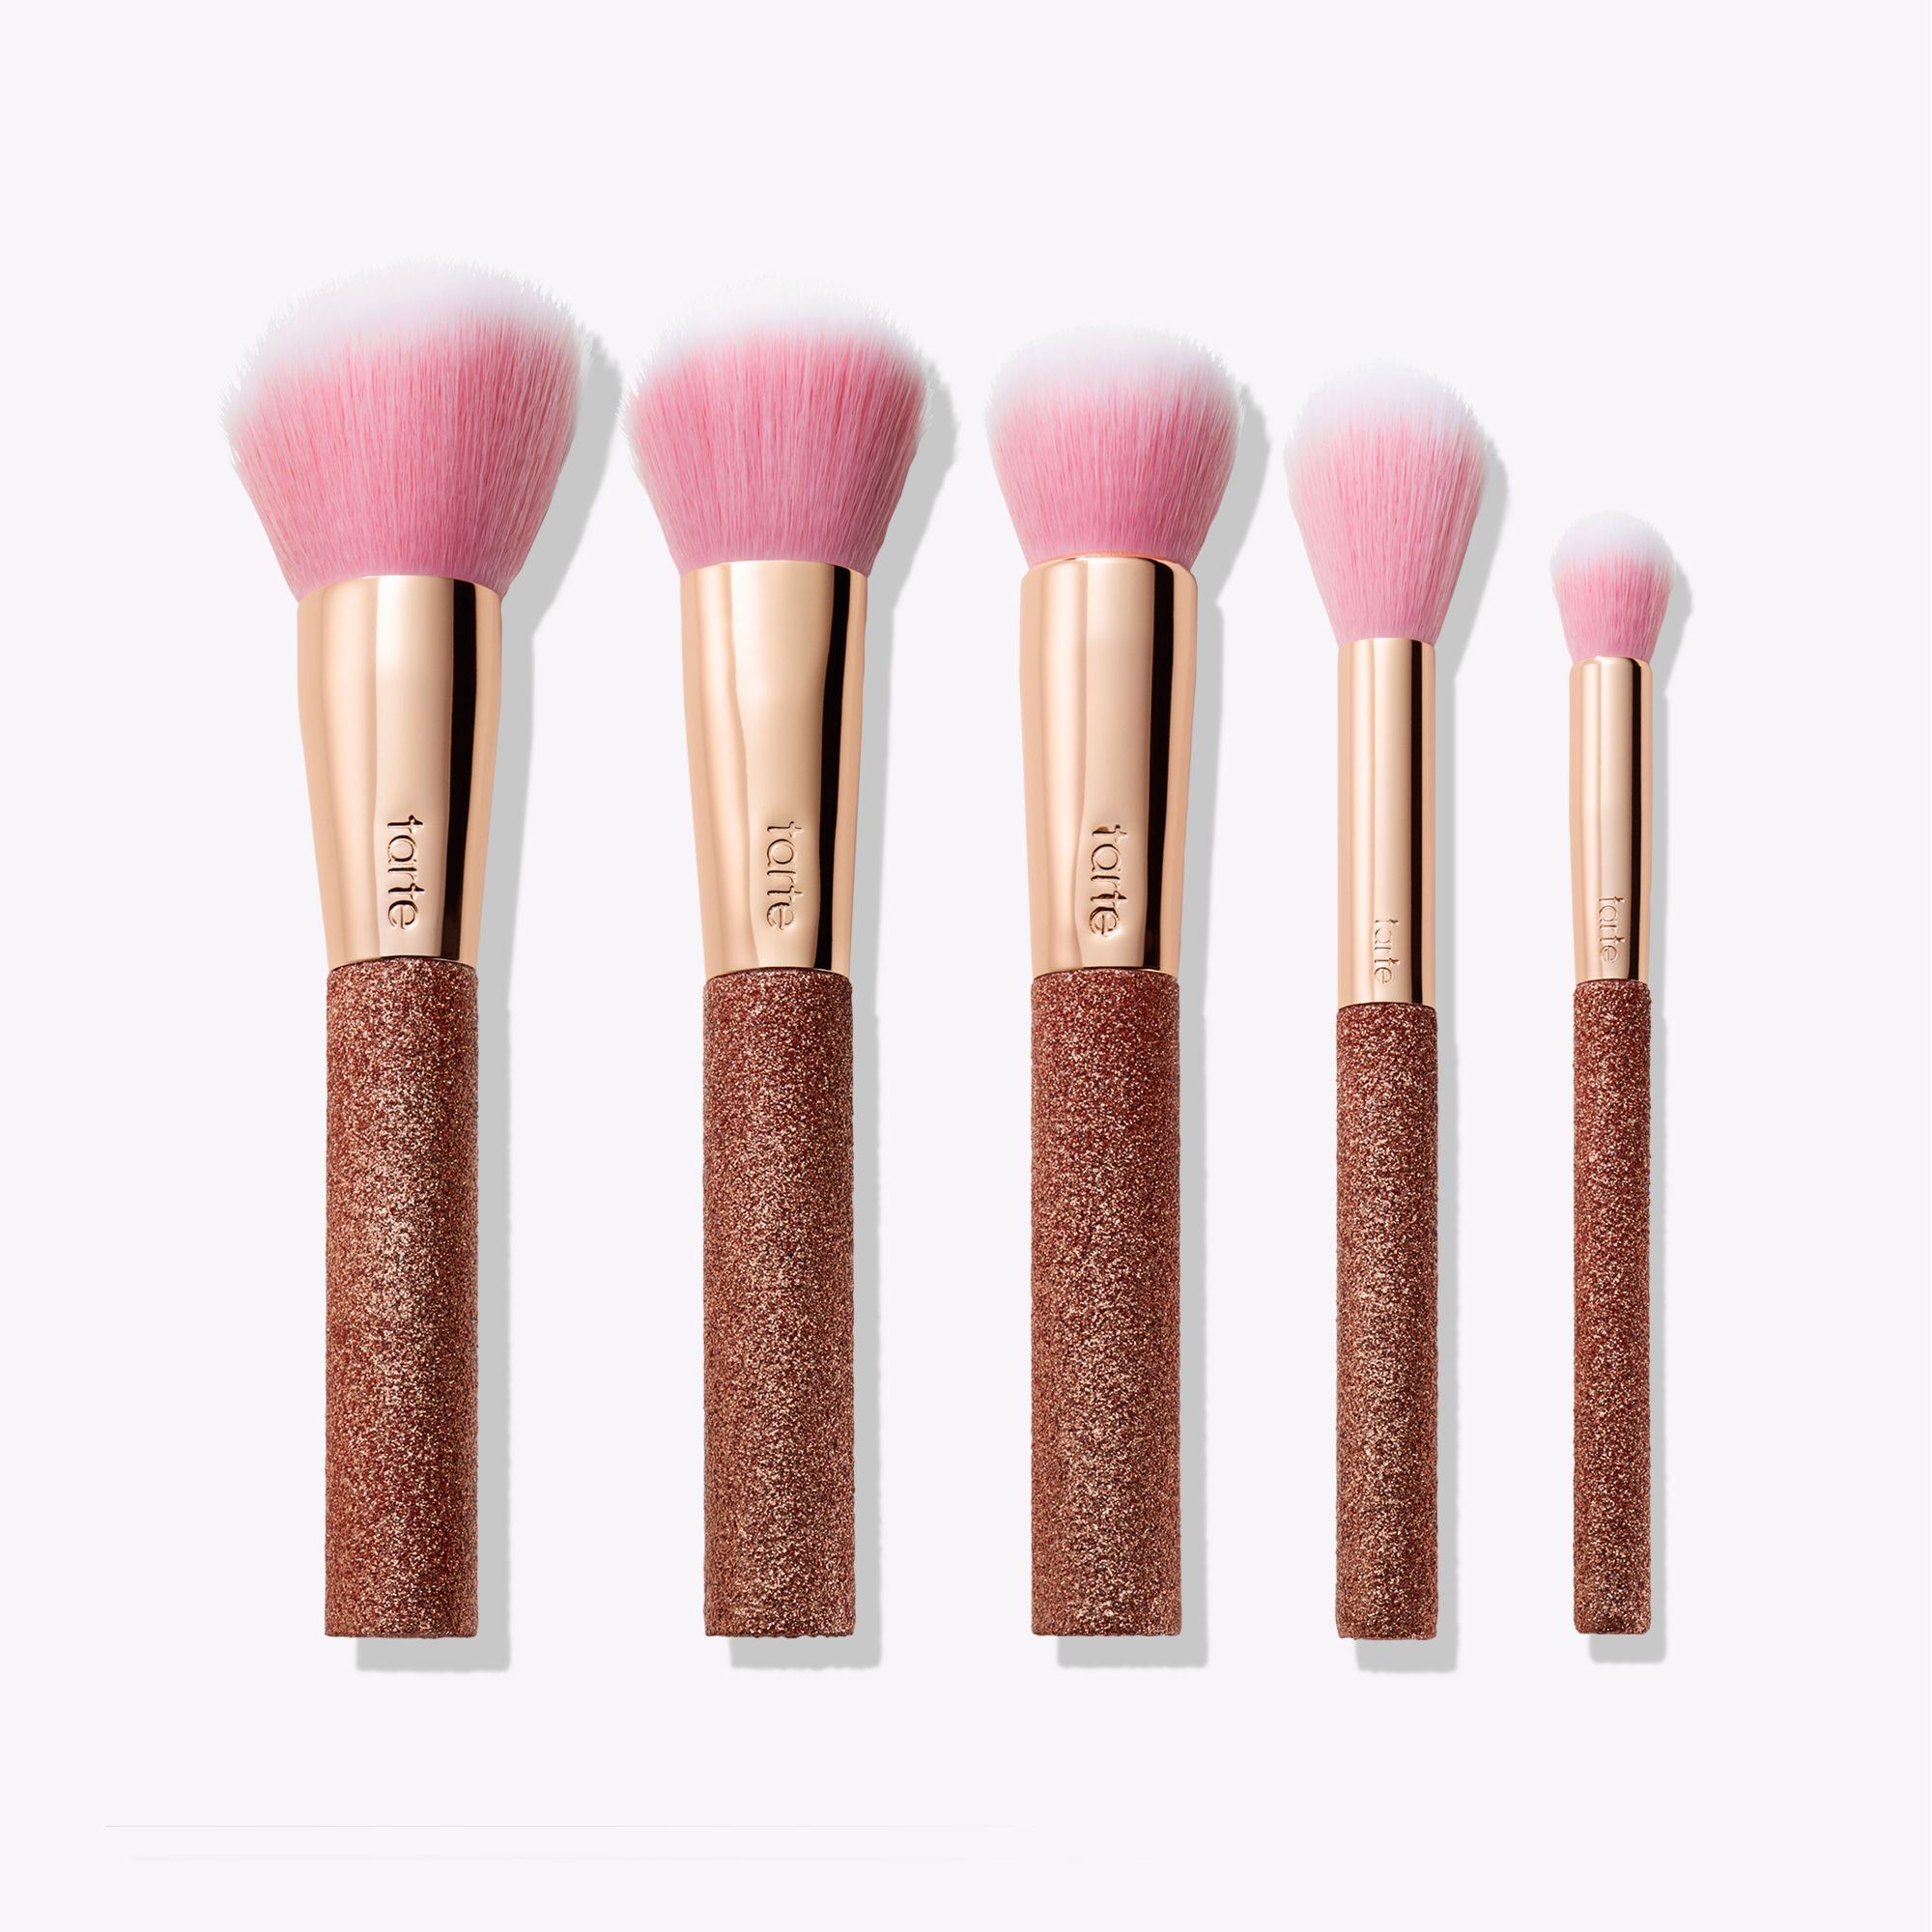 tarte Goal Getters Contour Brush Set